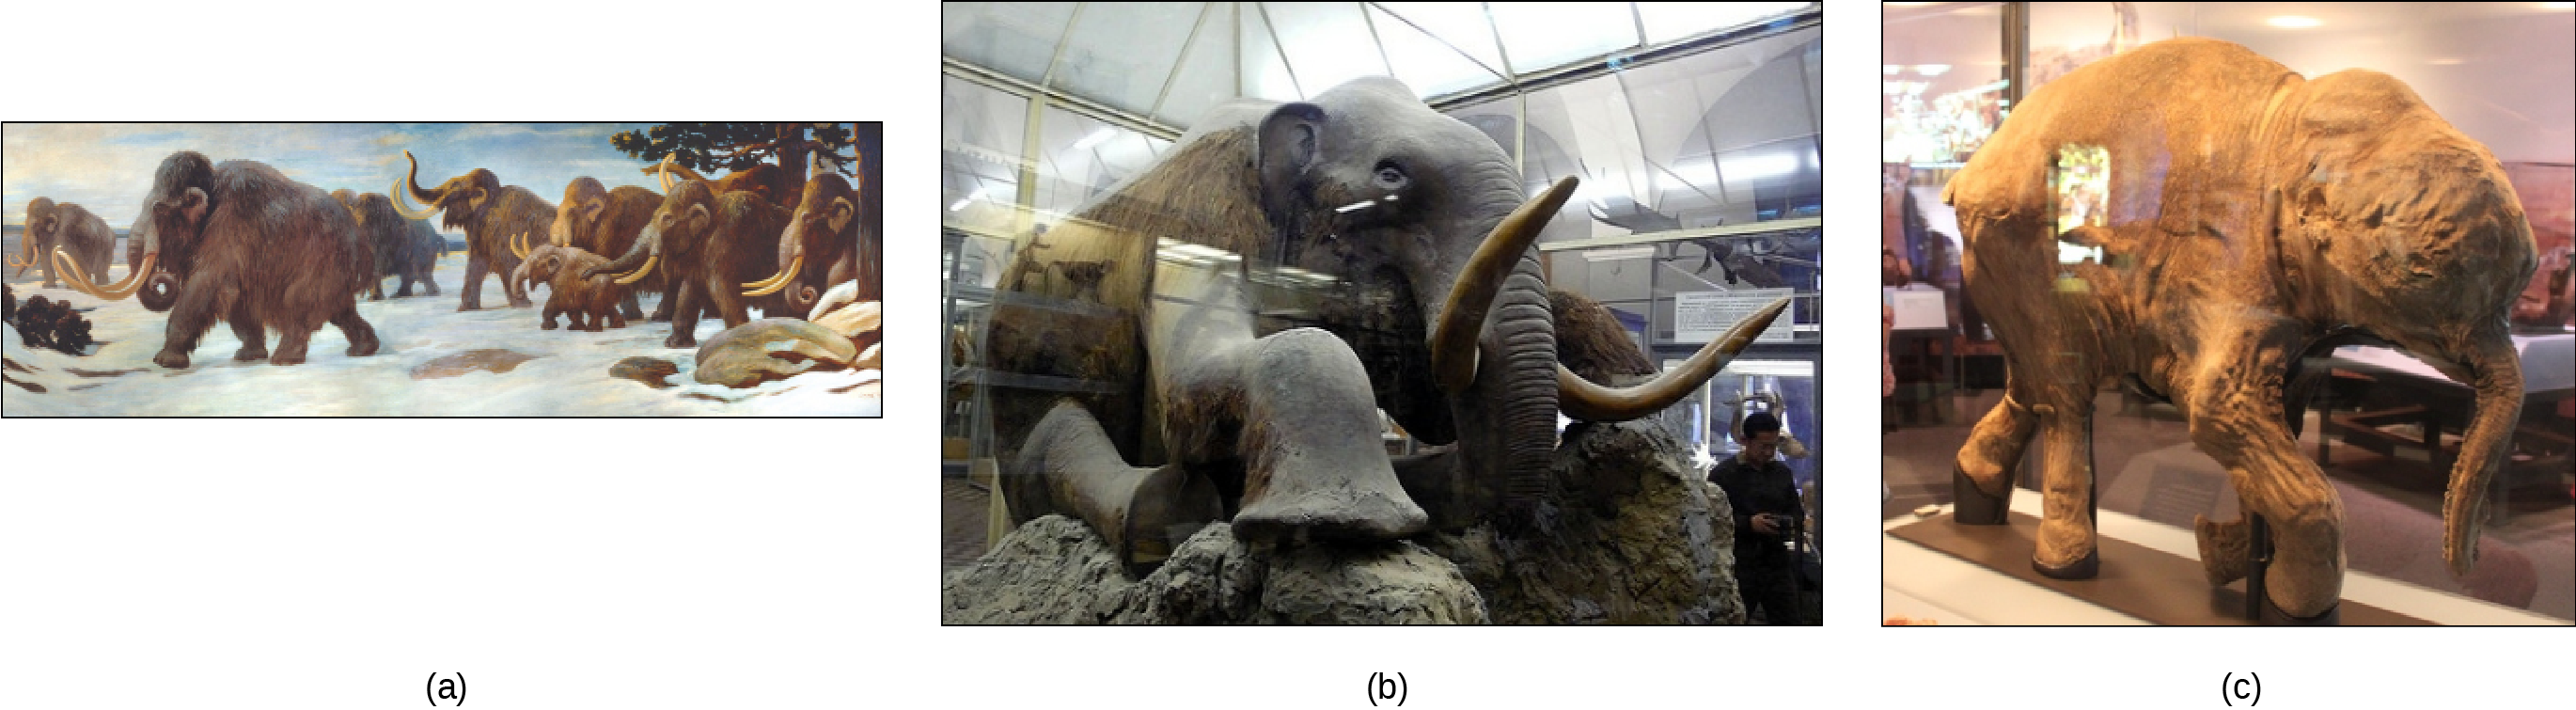 Three depictions of mammoths are shown.  They are large, elephant like creatures covered in fur and have long tusks. Photo a shows a painting of mammoths walking in the snow. Photo b shows a stuffed mammoth sitting in a museum display case. Photo c shows a mummified baby mammoth, also in a display case. Photo (b) shows a stuffed mammoth sitting in a museum display case. Photo (c) shows a mummified baby mammoth, also in a display case.